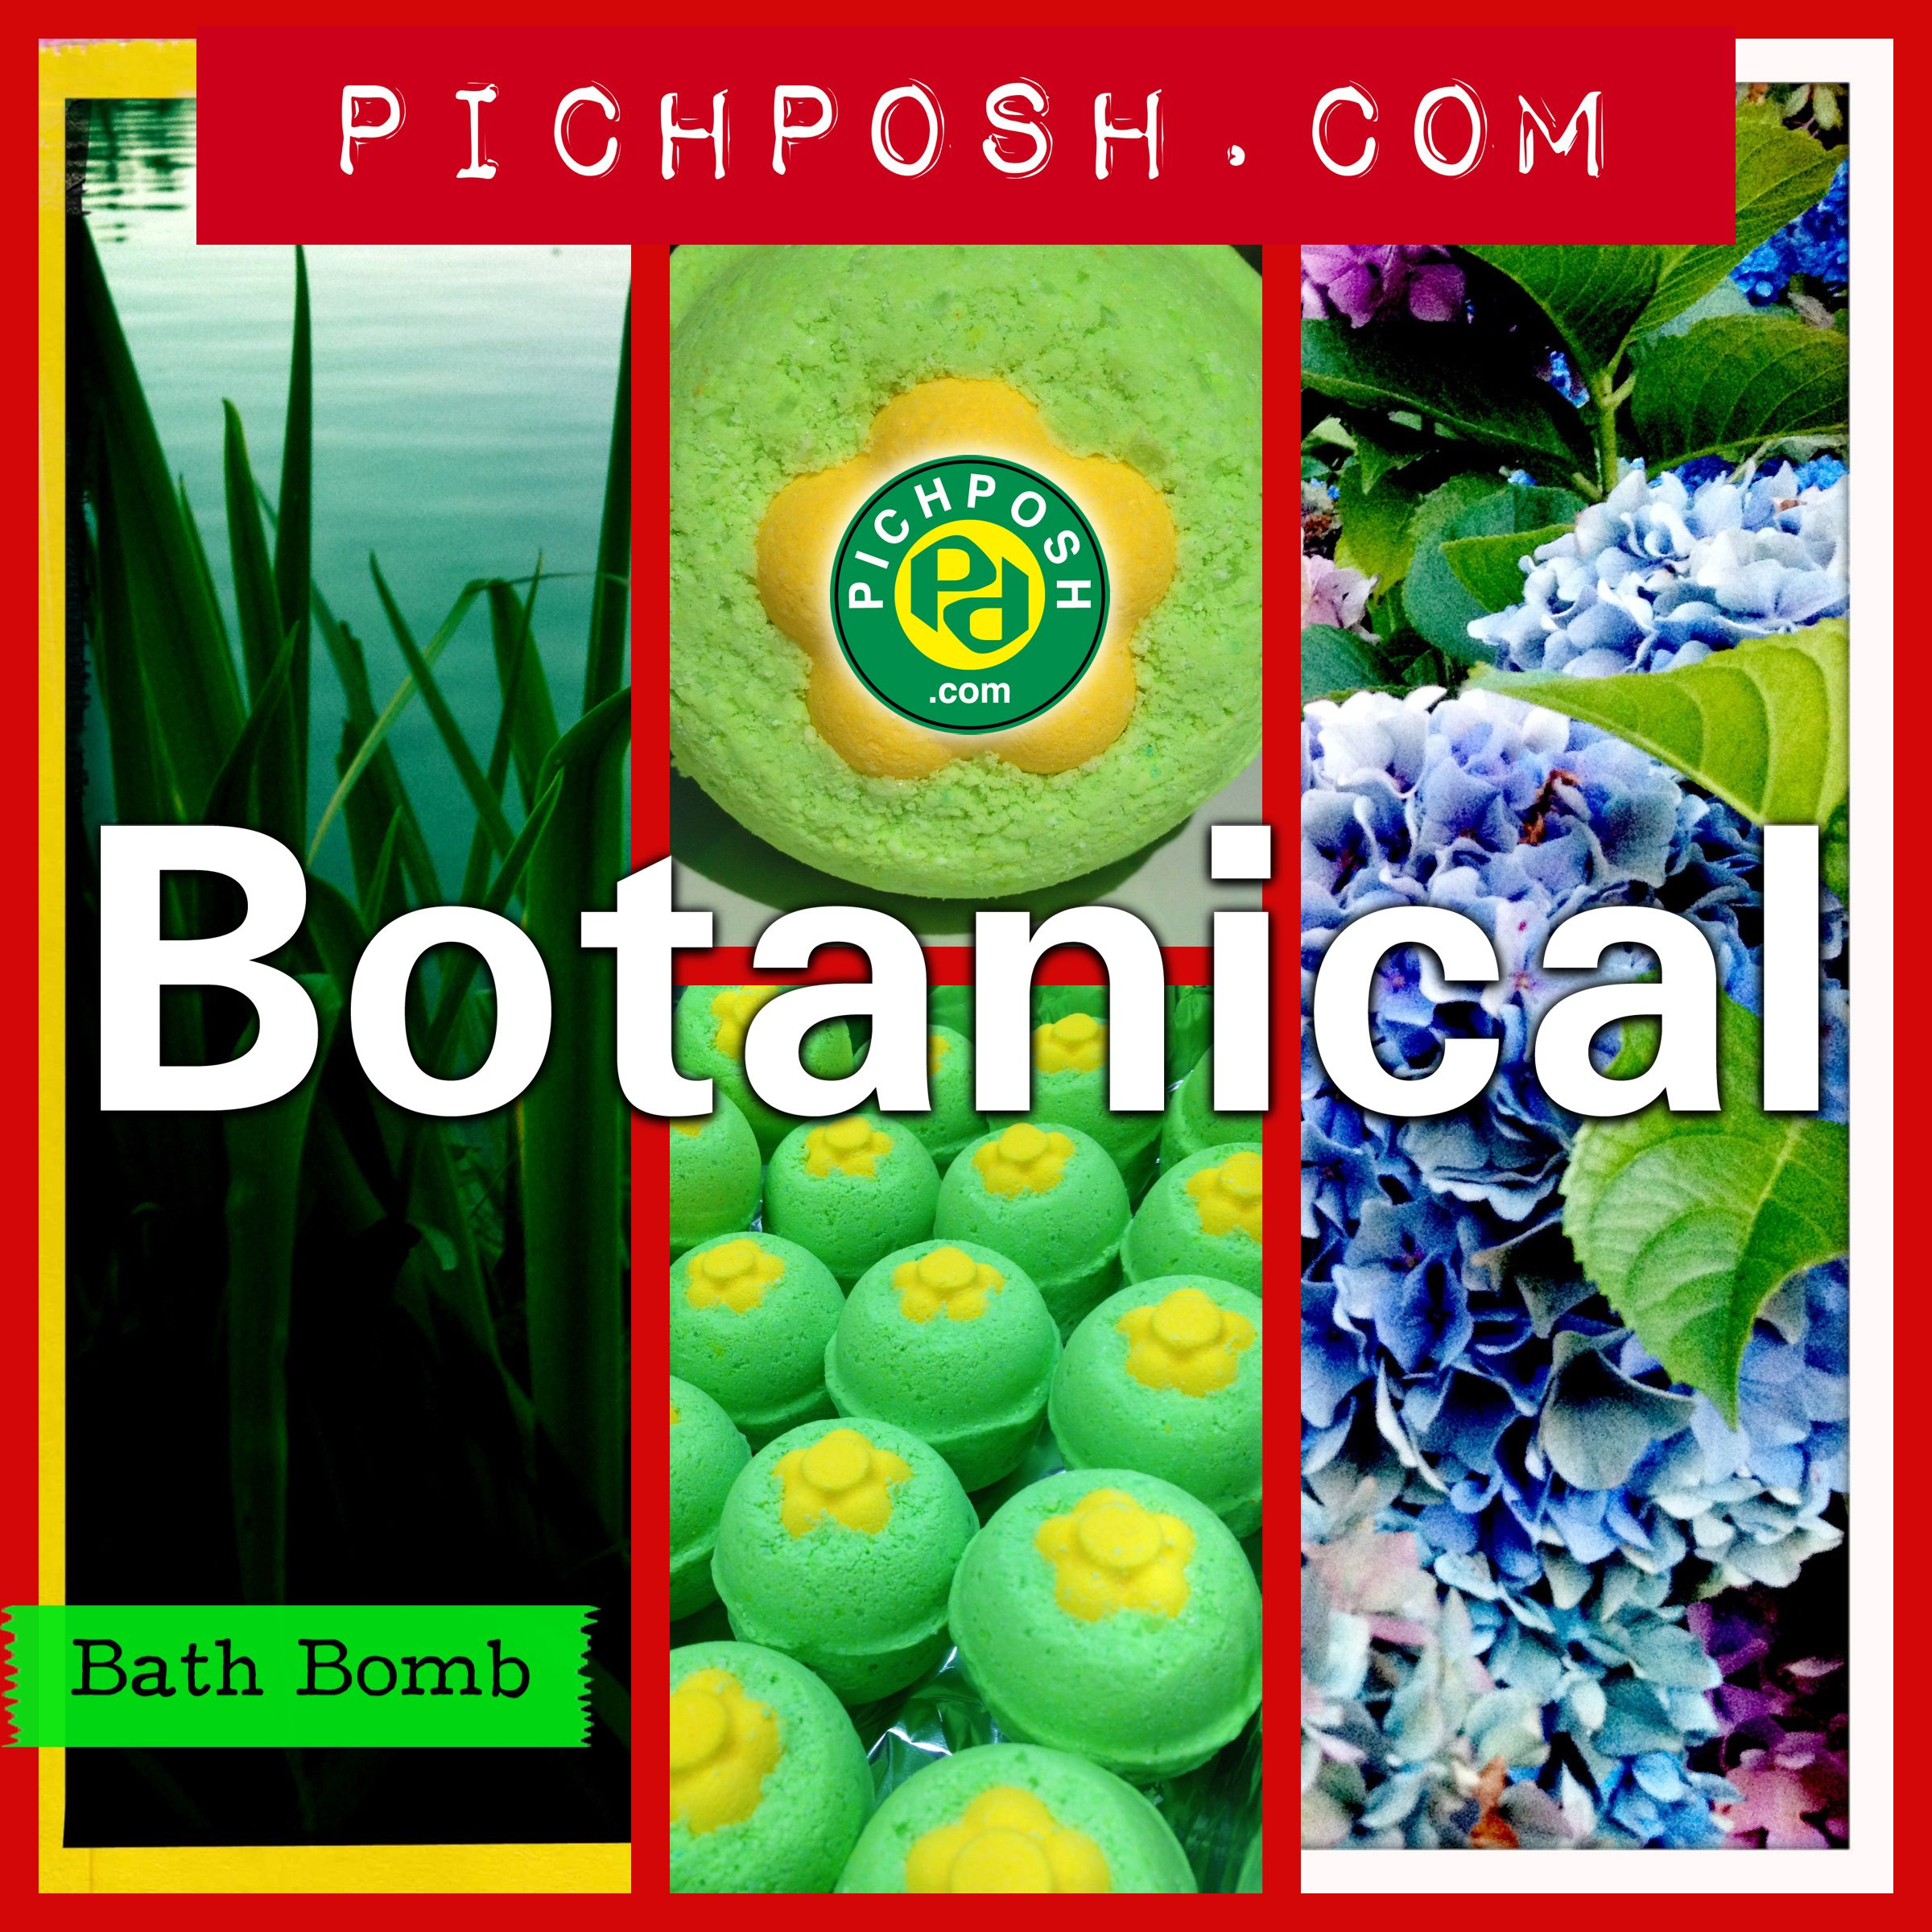 Grass in Lost Lagoon & Hydrangea Bush (both in Stanley Park, Vancouver, BC) join us on a stroll through a garden with hints of the far east - Botanical Bath Bomb. While bathing add one or more Bath Bombs to your Bath & discover the PICHPOSH Experience. Shop Here: http://www.pichposh.com/securestore/c148229p16378095.2.html Visit PICHPOSH.com #botanical #cool #artistic #travel #vancouver #lostlagoon #hrdrangea #nature #green #bathandbody #bathbombs #bathbomb #summer #bathandbody #gift…